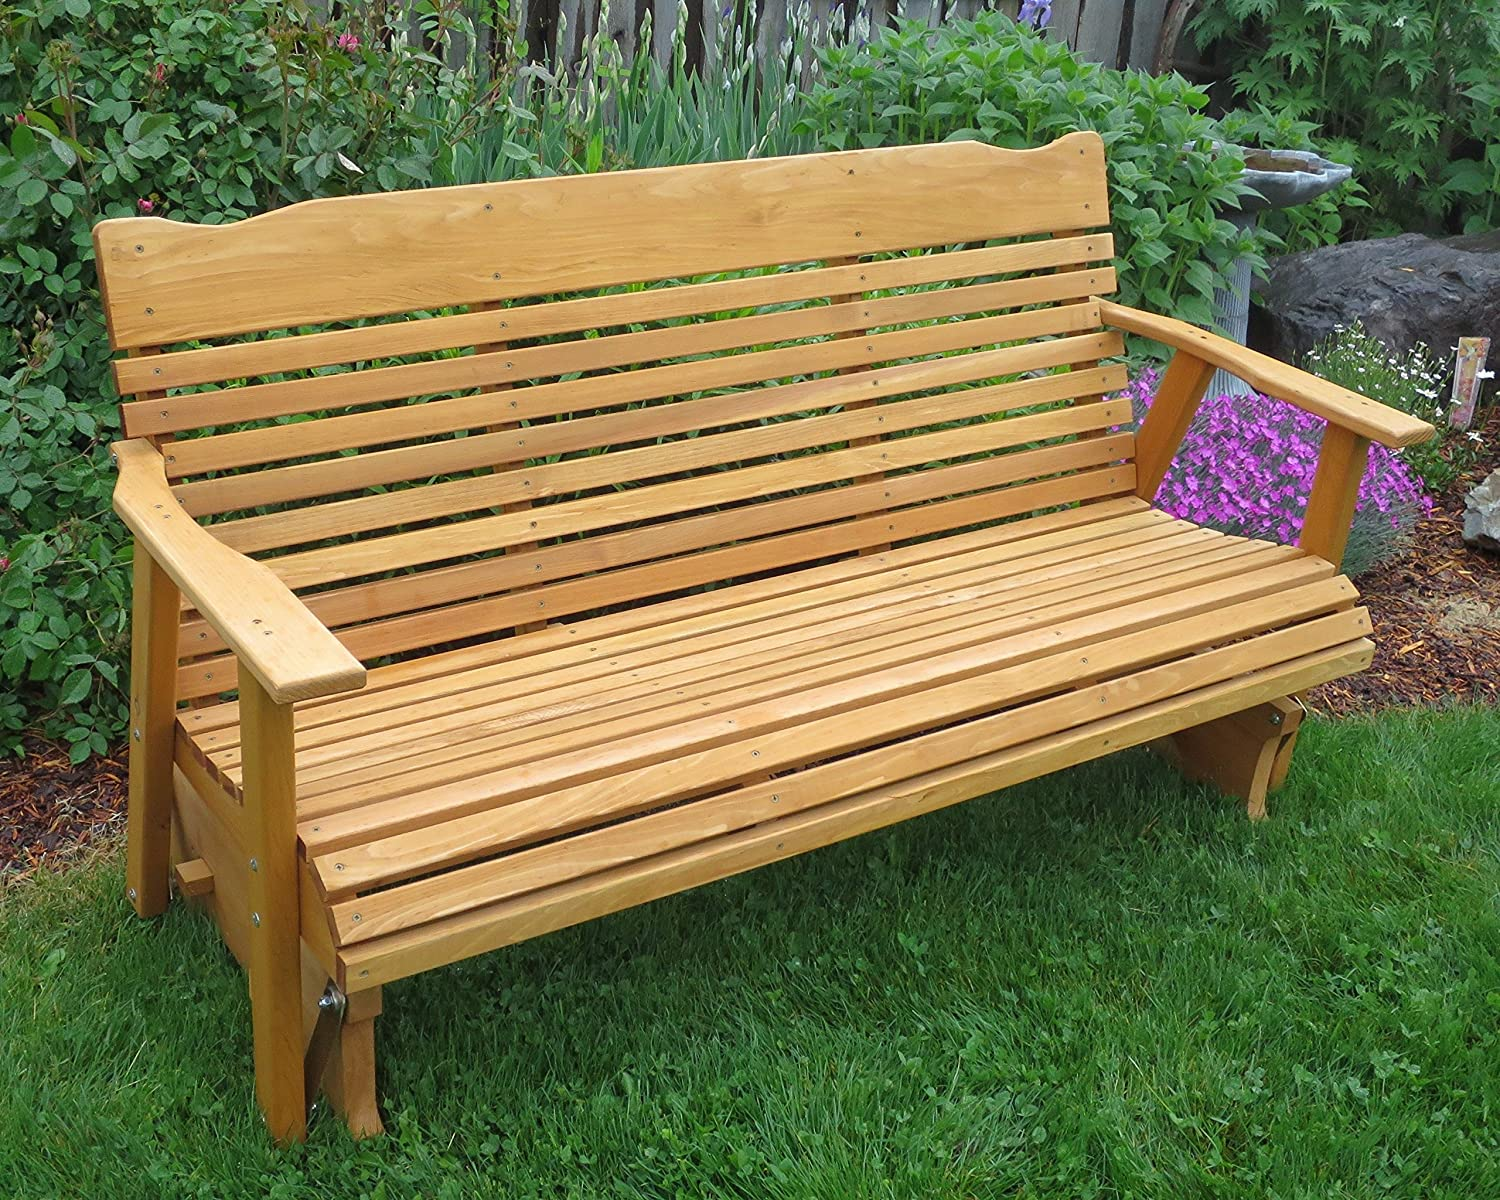 Superb Amazon.com : 5u0027 Cedar Porch Glider W/stained Finish, Amish Crafted : Patio  Gliders : Garden U0026 Outdoor